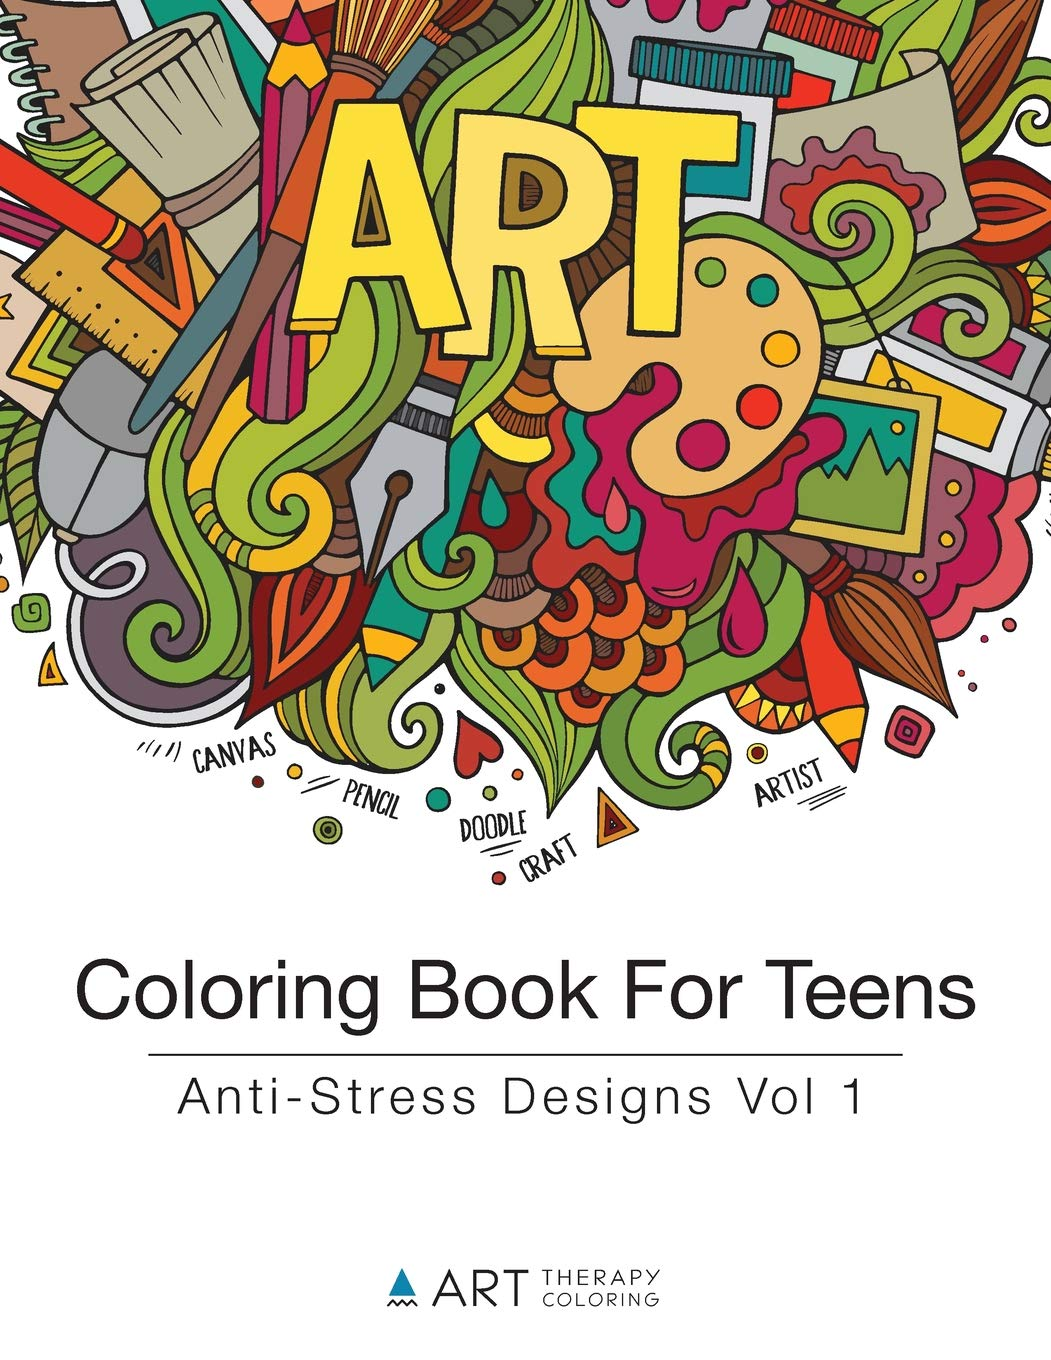 - Coloring Book For Teens: Anti-Stress Designs Vol 1: Art Therapy